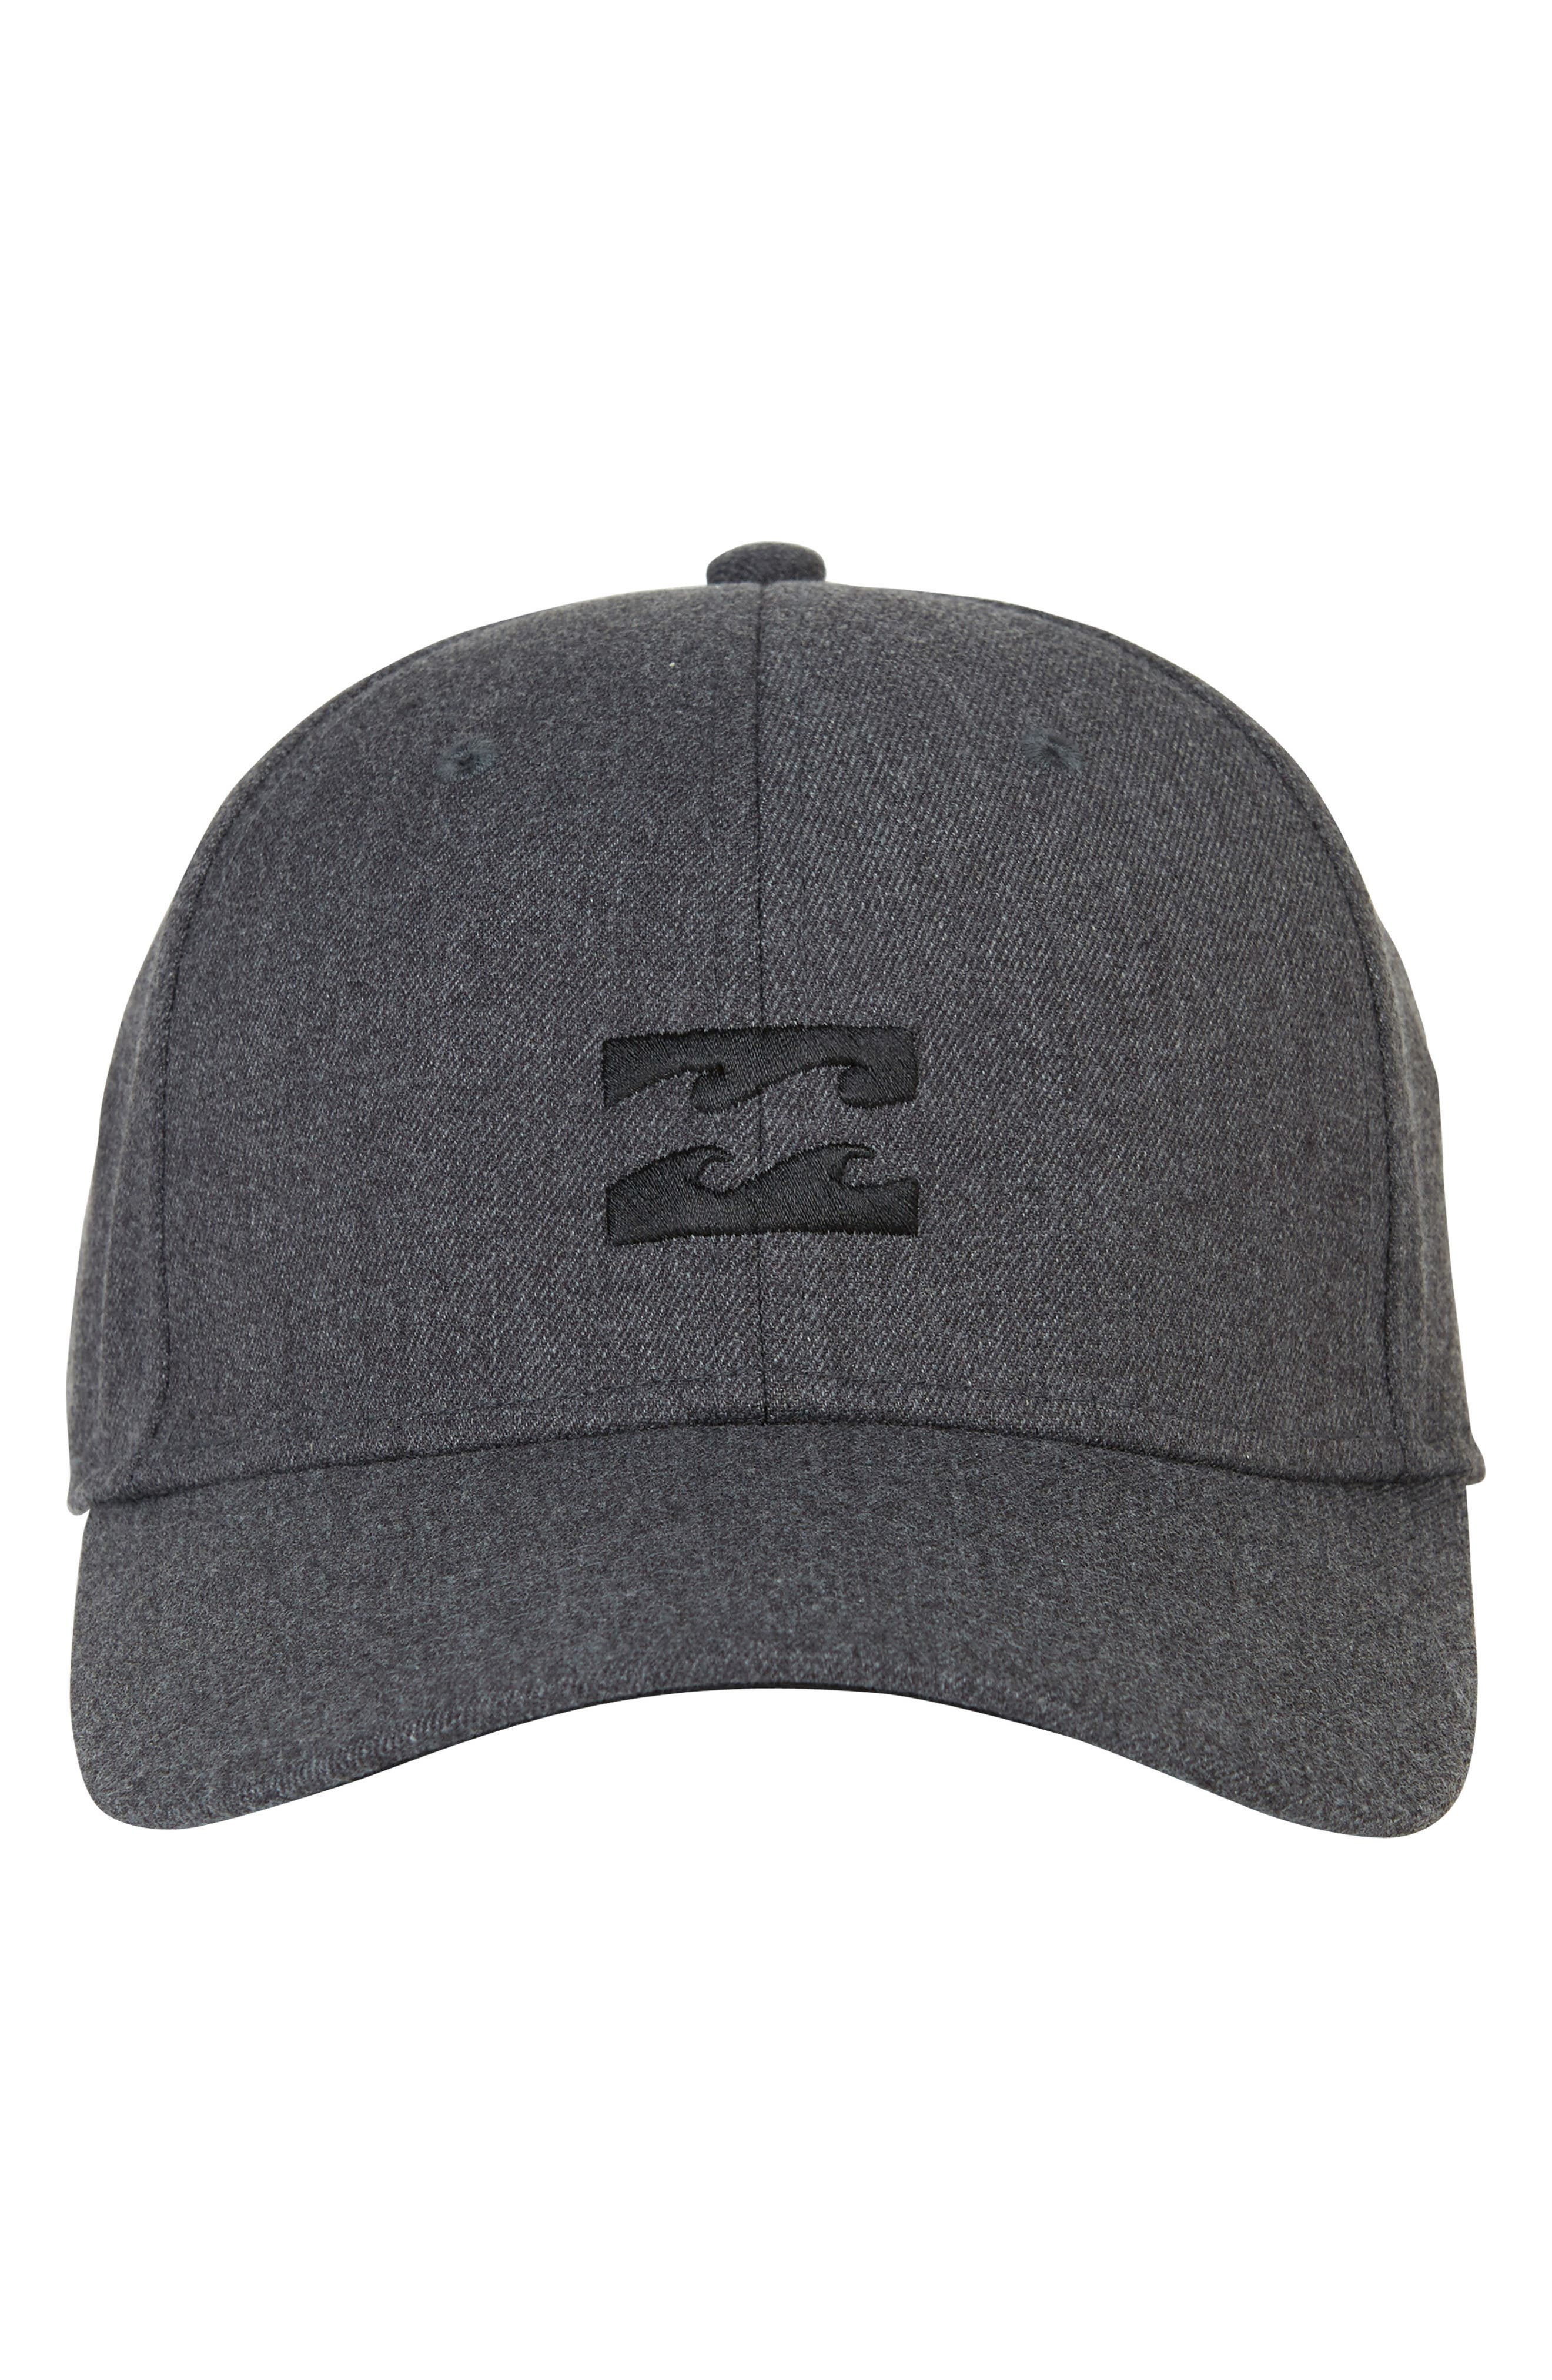 All Day Stretch Ball Cap,                             Alternate thumbnail 2, color,                             DARK GREY HEATHER